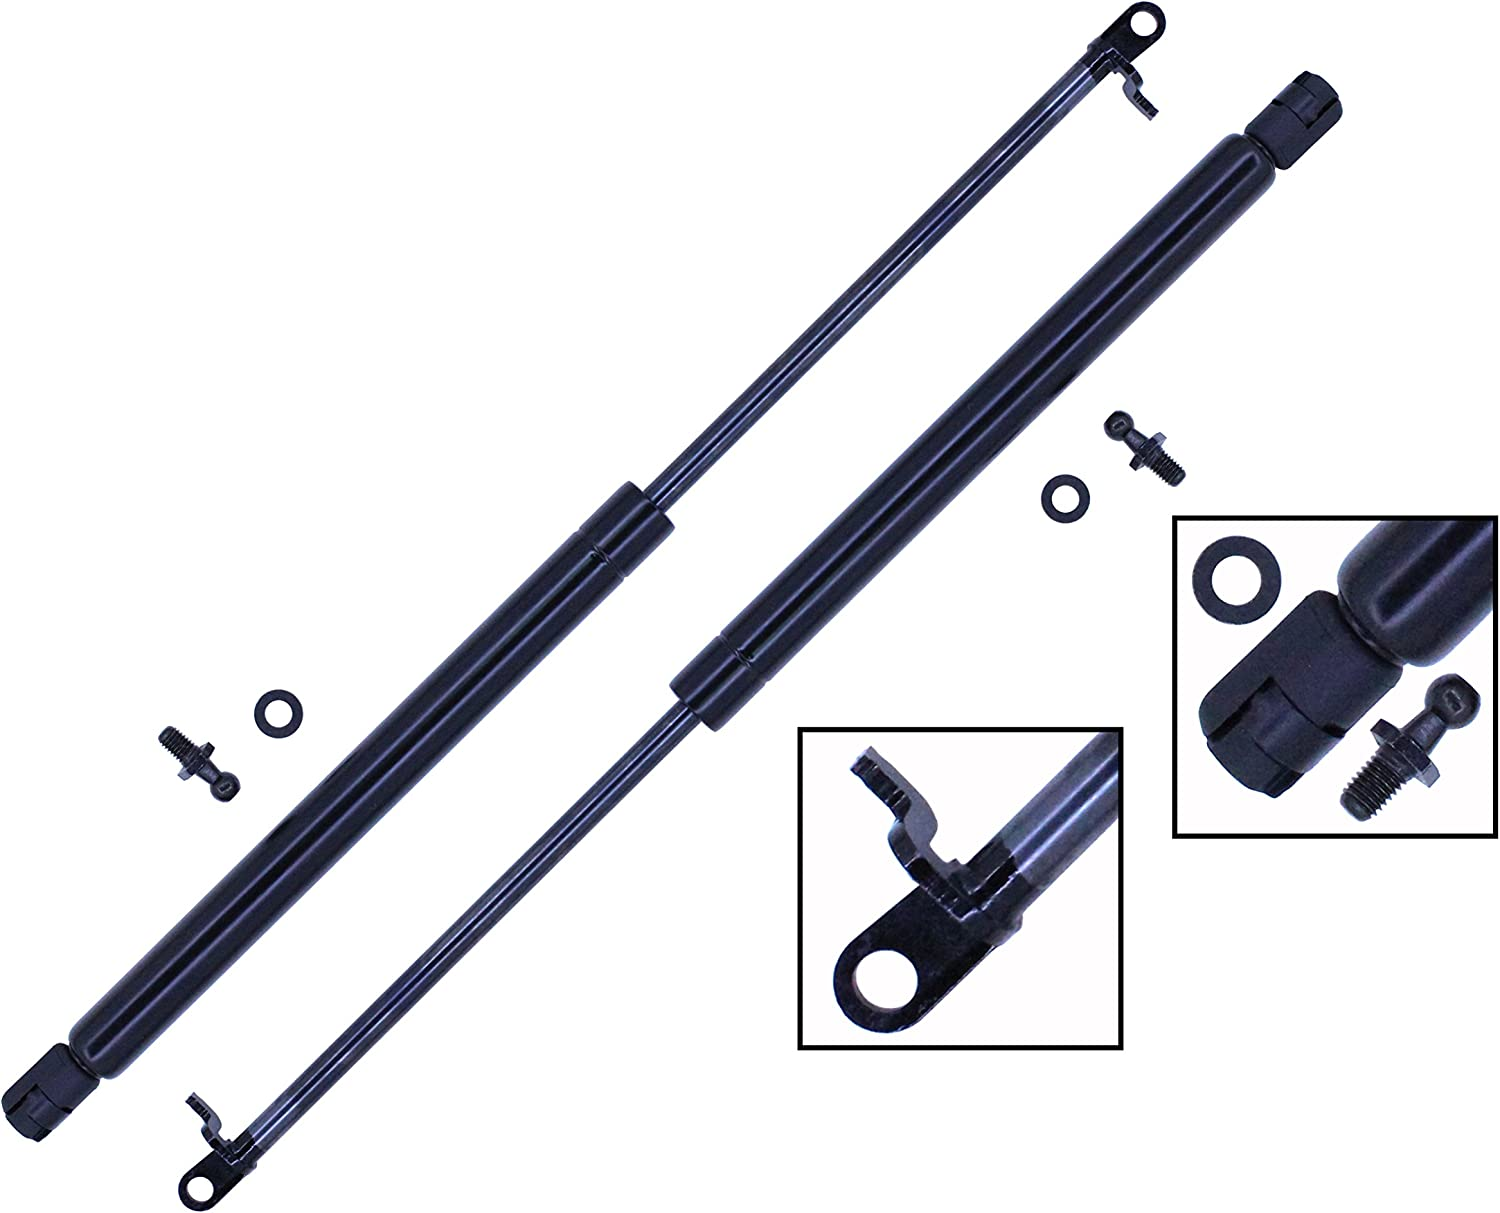 2 Pieces Set Tuff Support Trunk To 1993 1997 Lift Rapid rise Supports favorite Lid